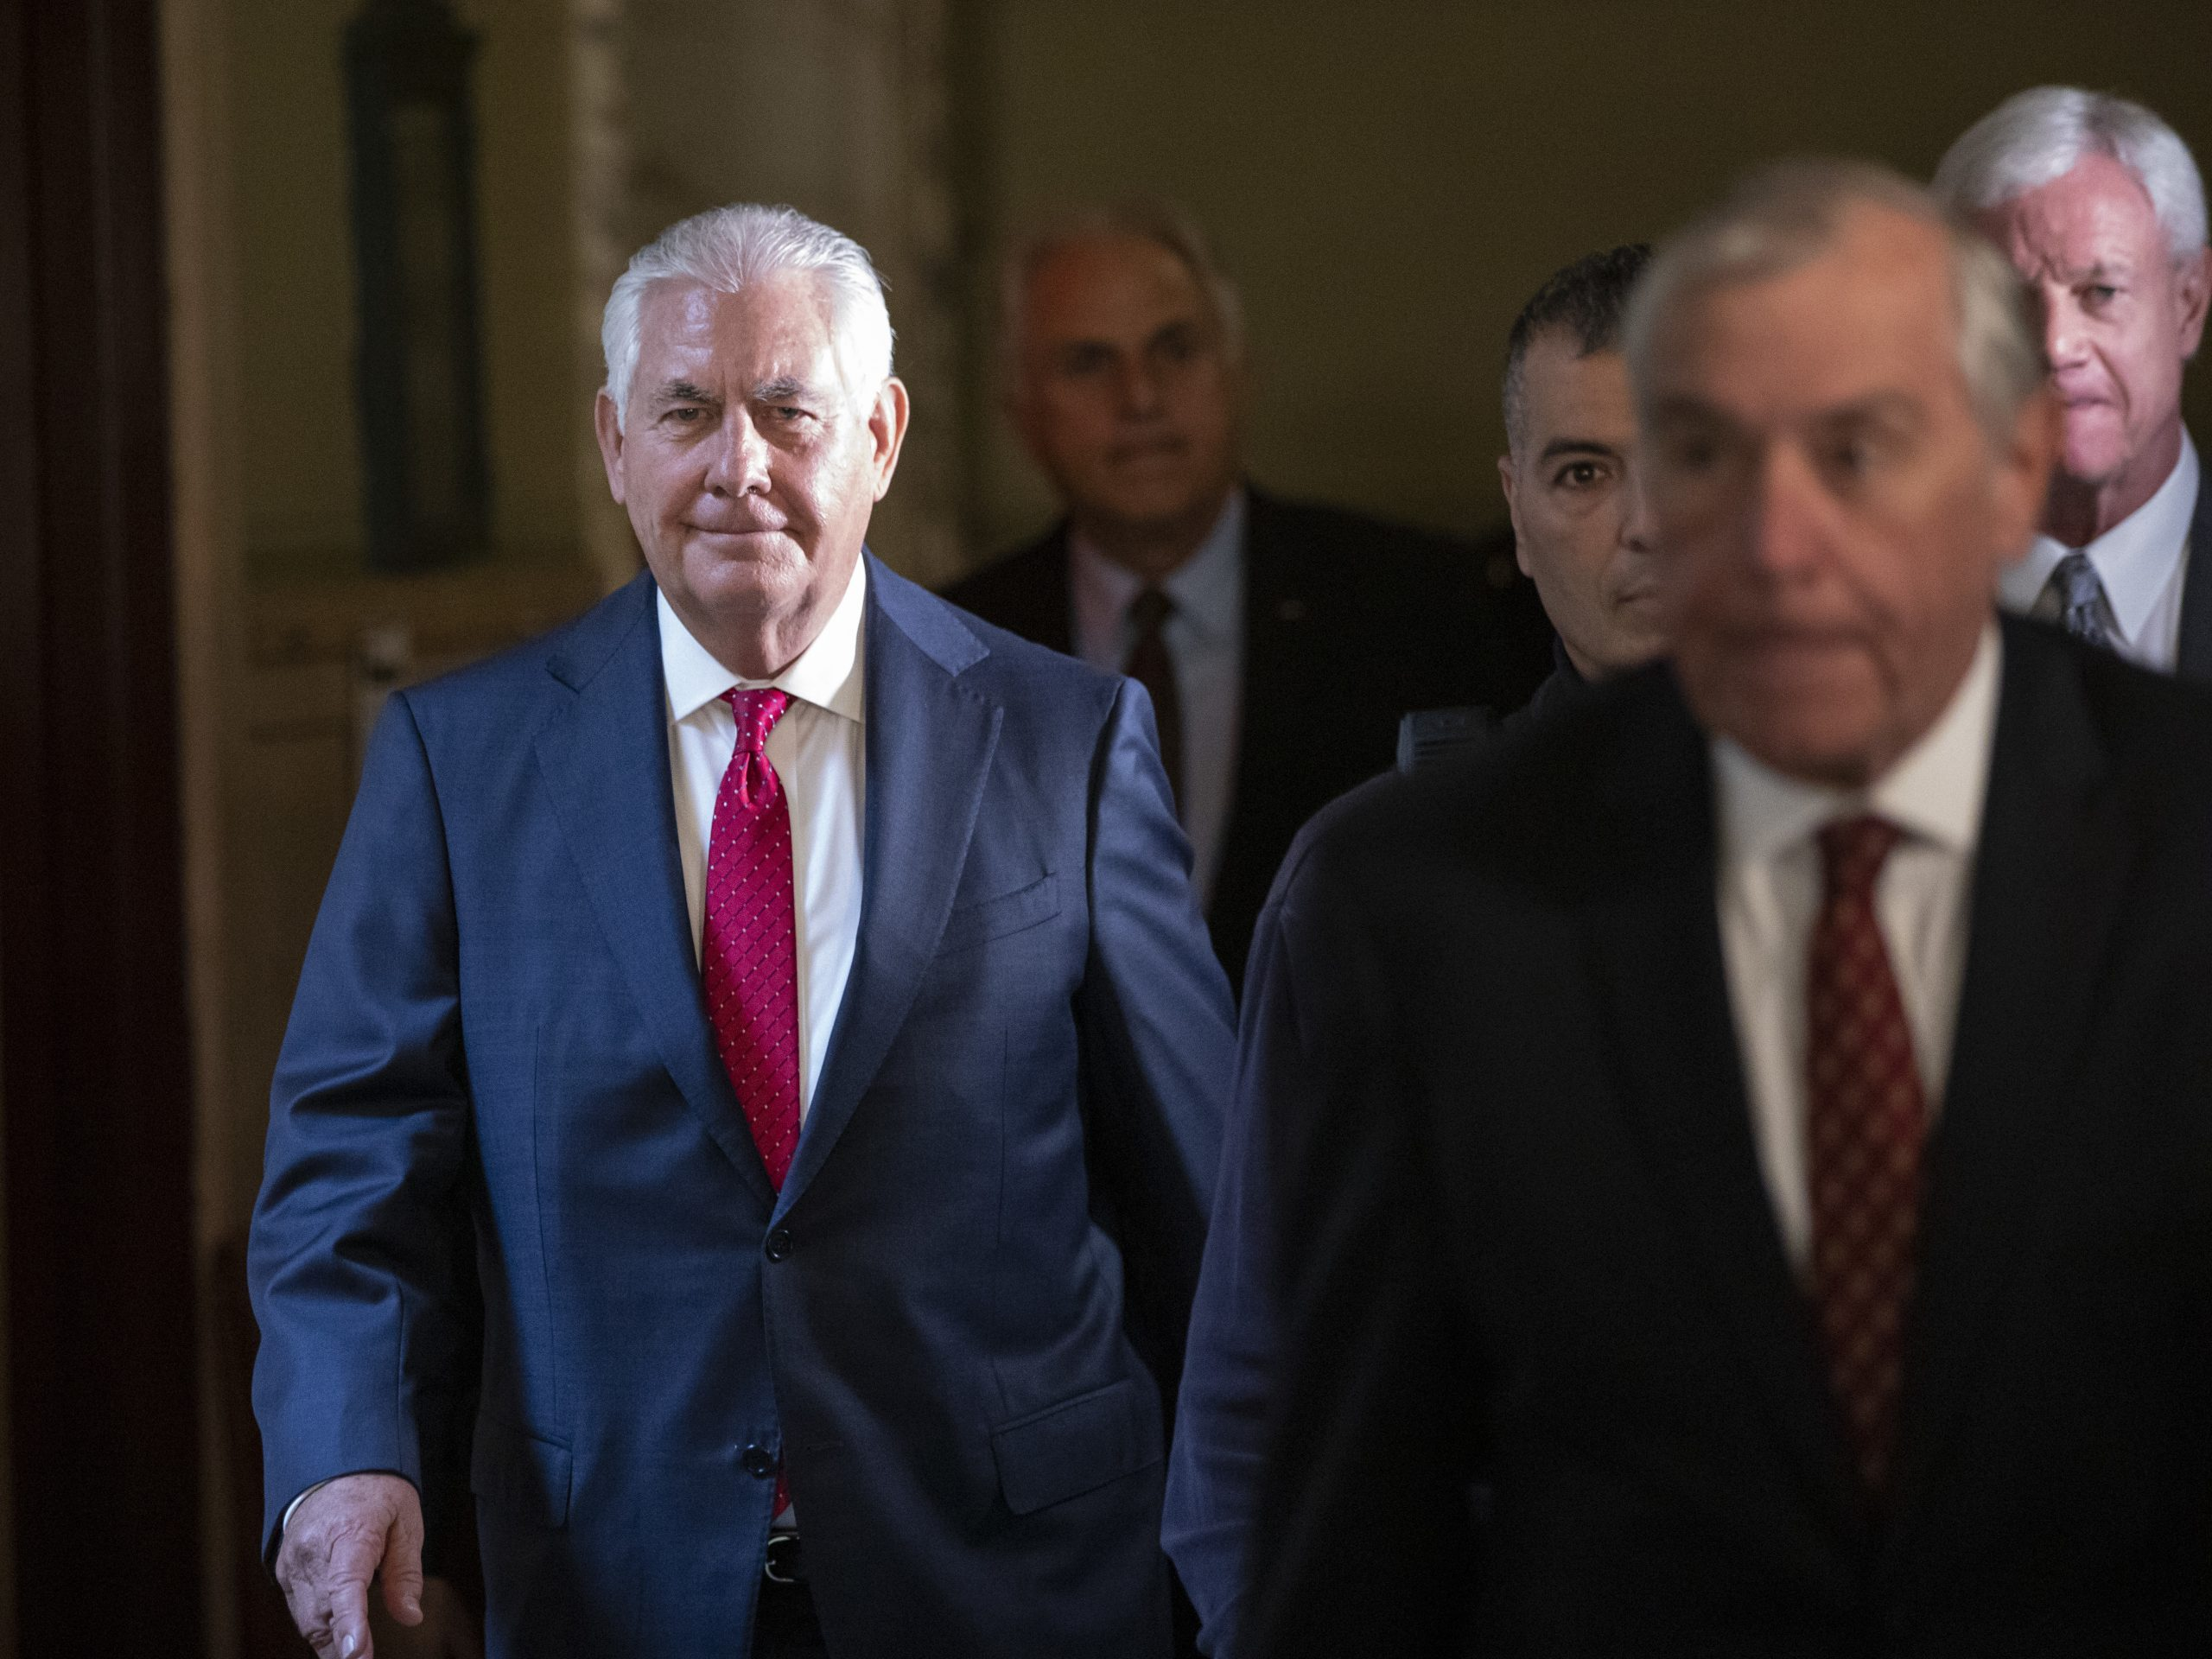 Former Exxon CEO Rex Tillerson testified that the company used different carbon accounting methods appropriately.